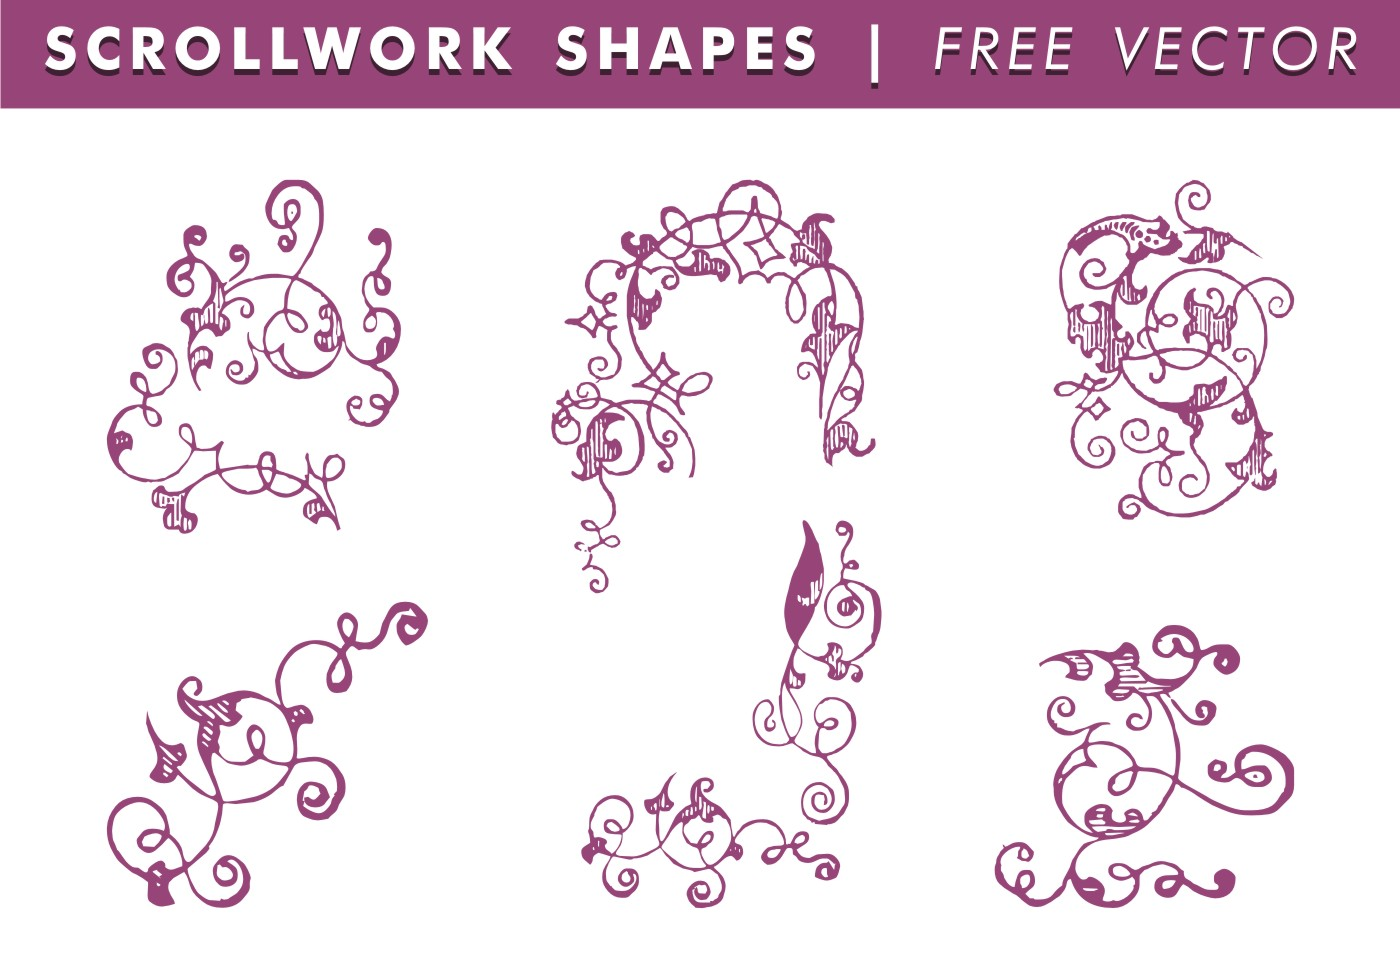 Scrollwork Shapes Free Vector Download Free Vector Art